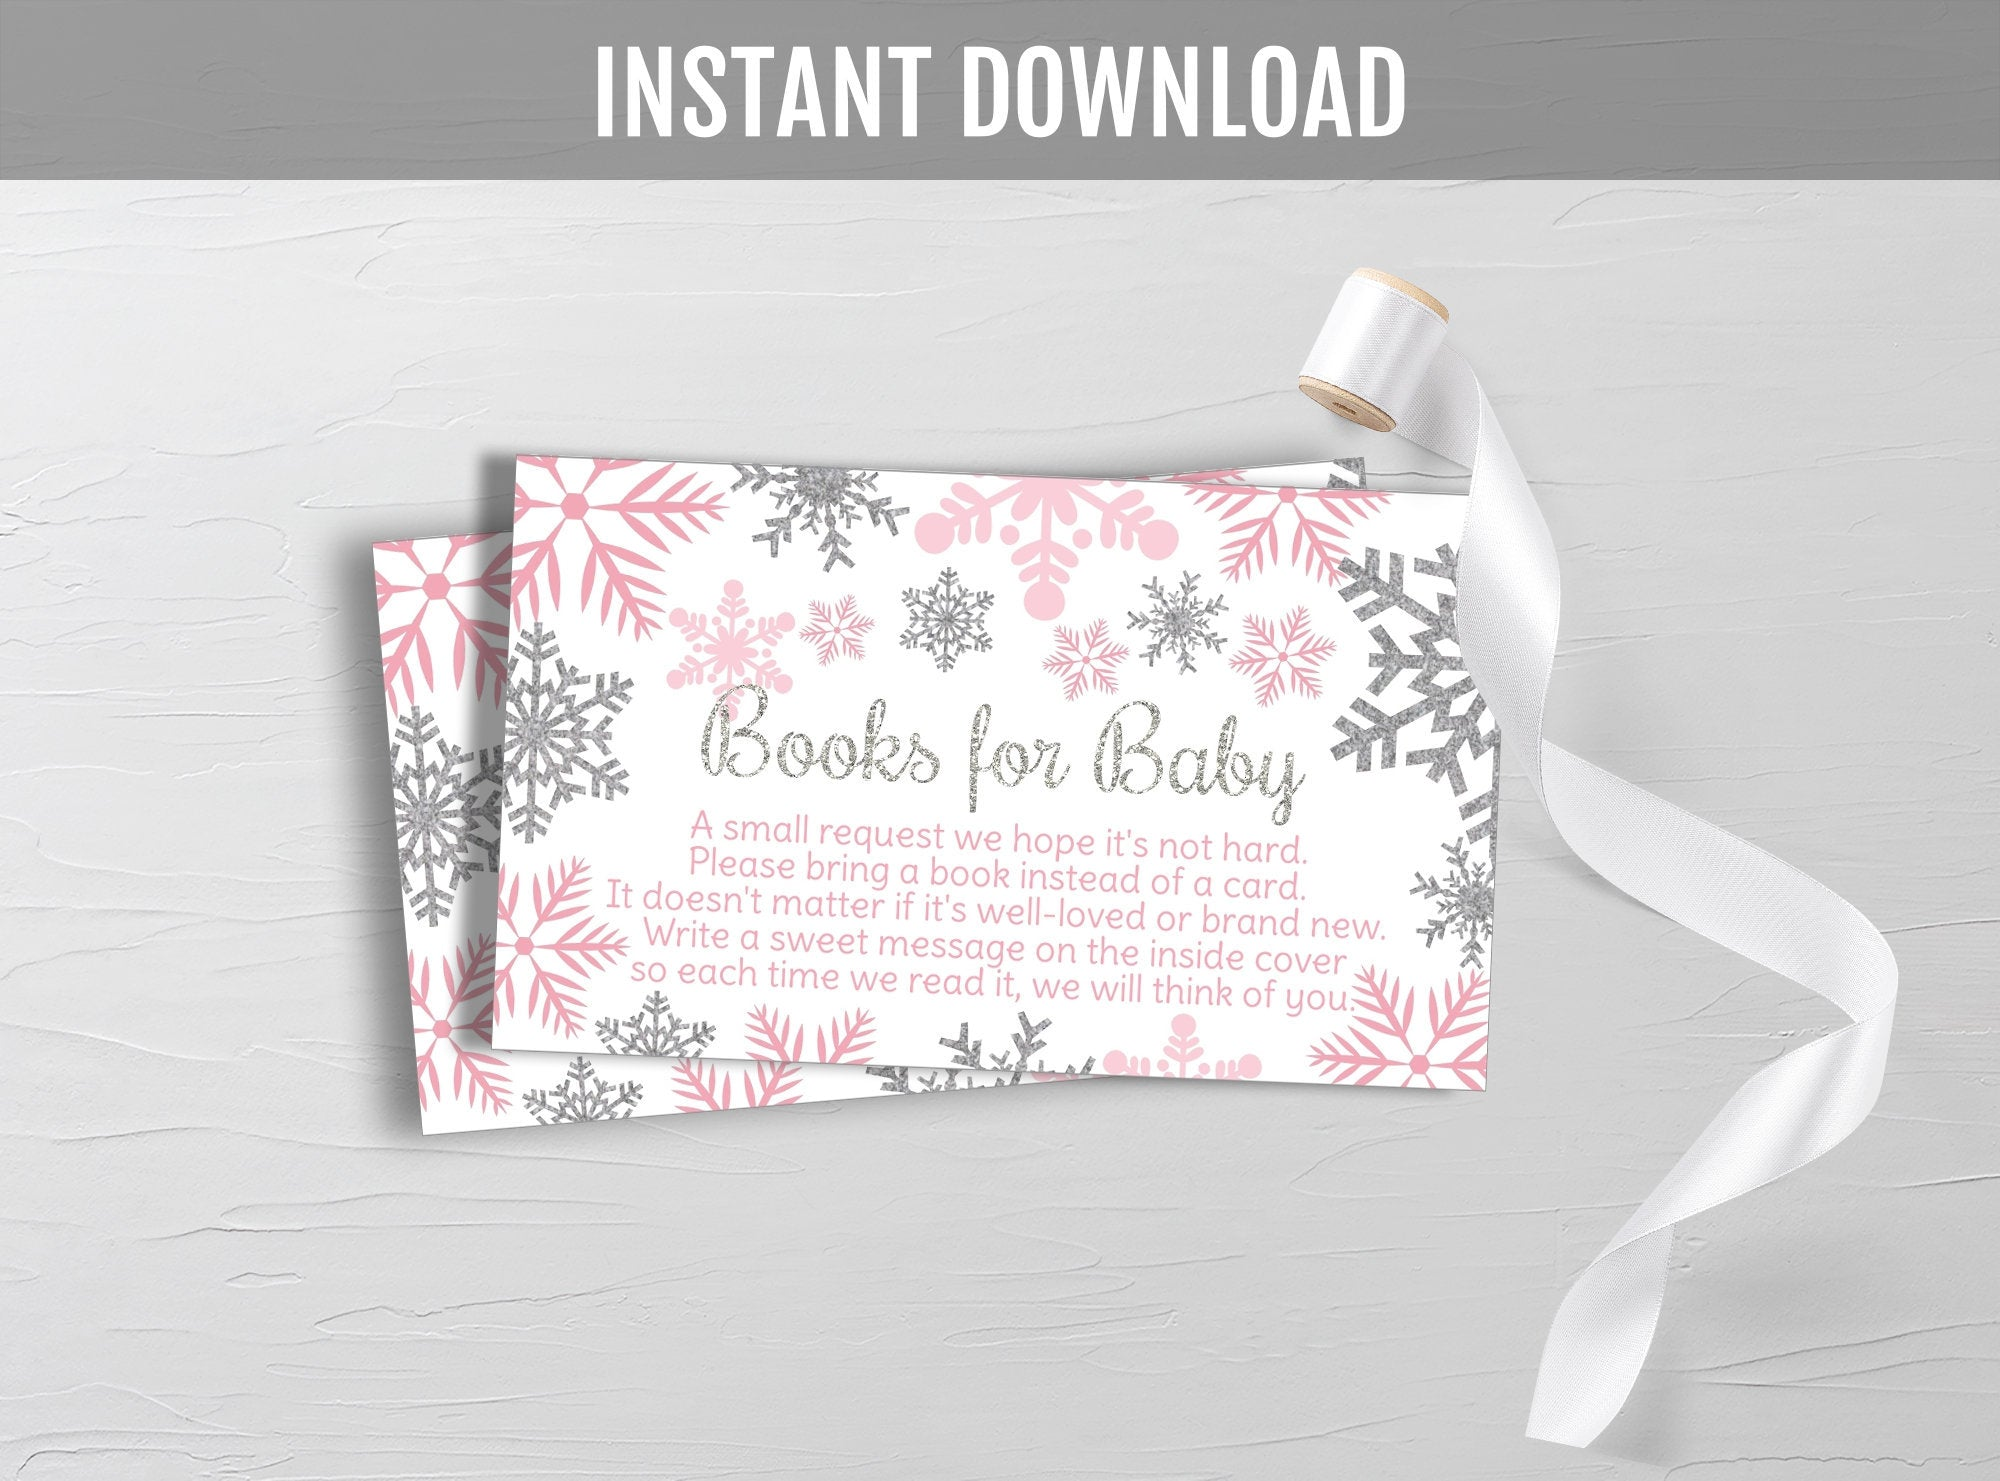 Winter Books for Baby, Pink & Silver Glitter Snowflakes, Book Request, Baby Shower Insert Card, Instant Download - TitaTipsPrintables